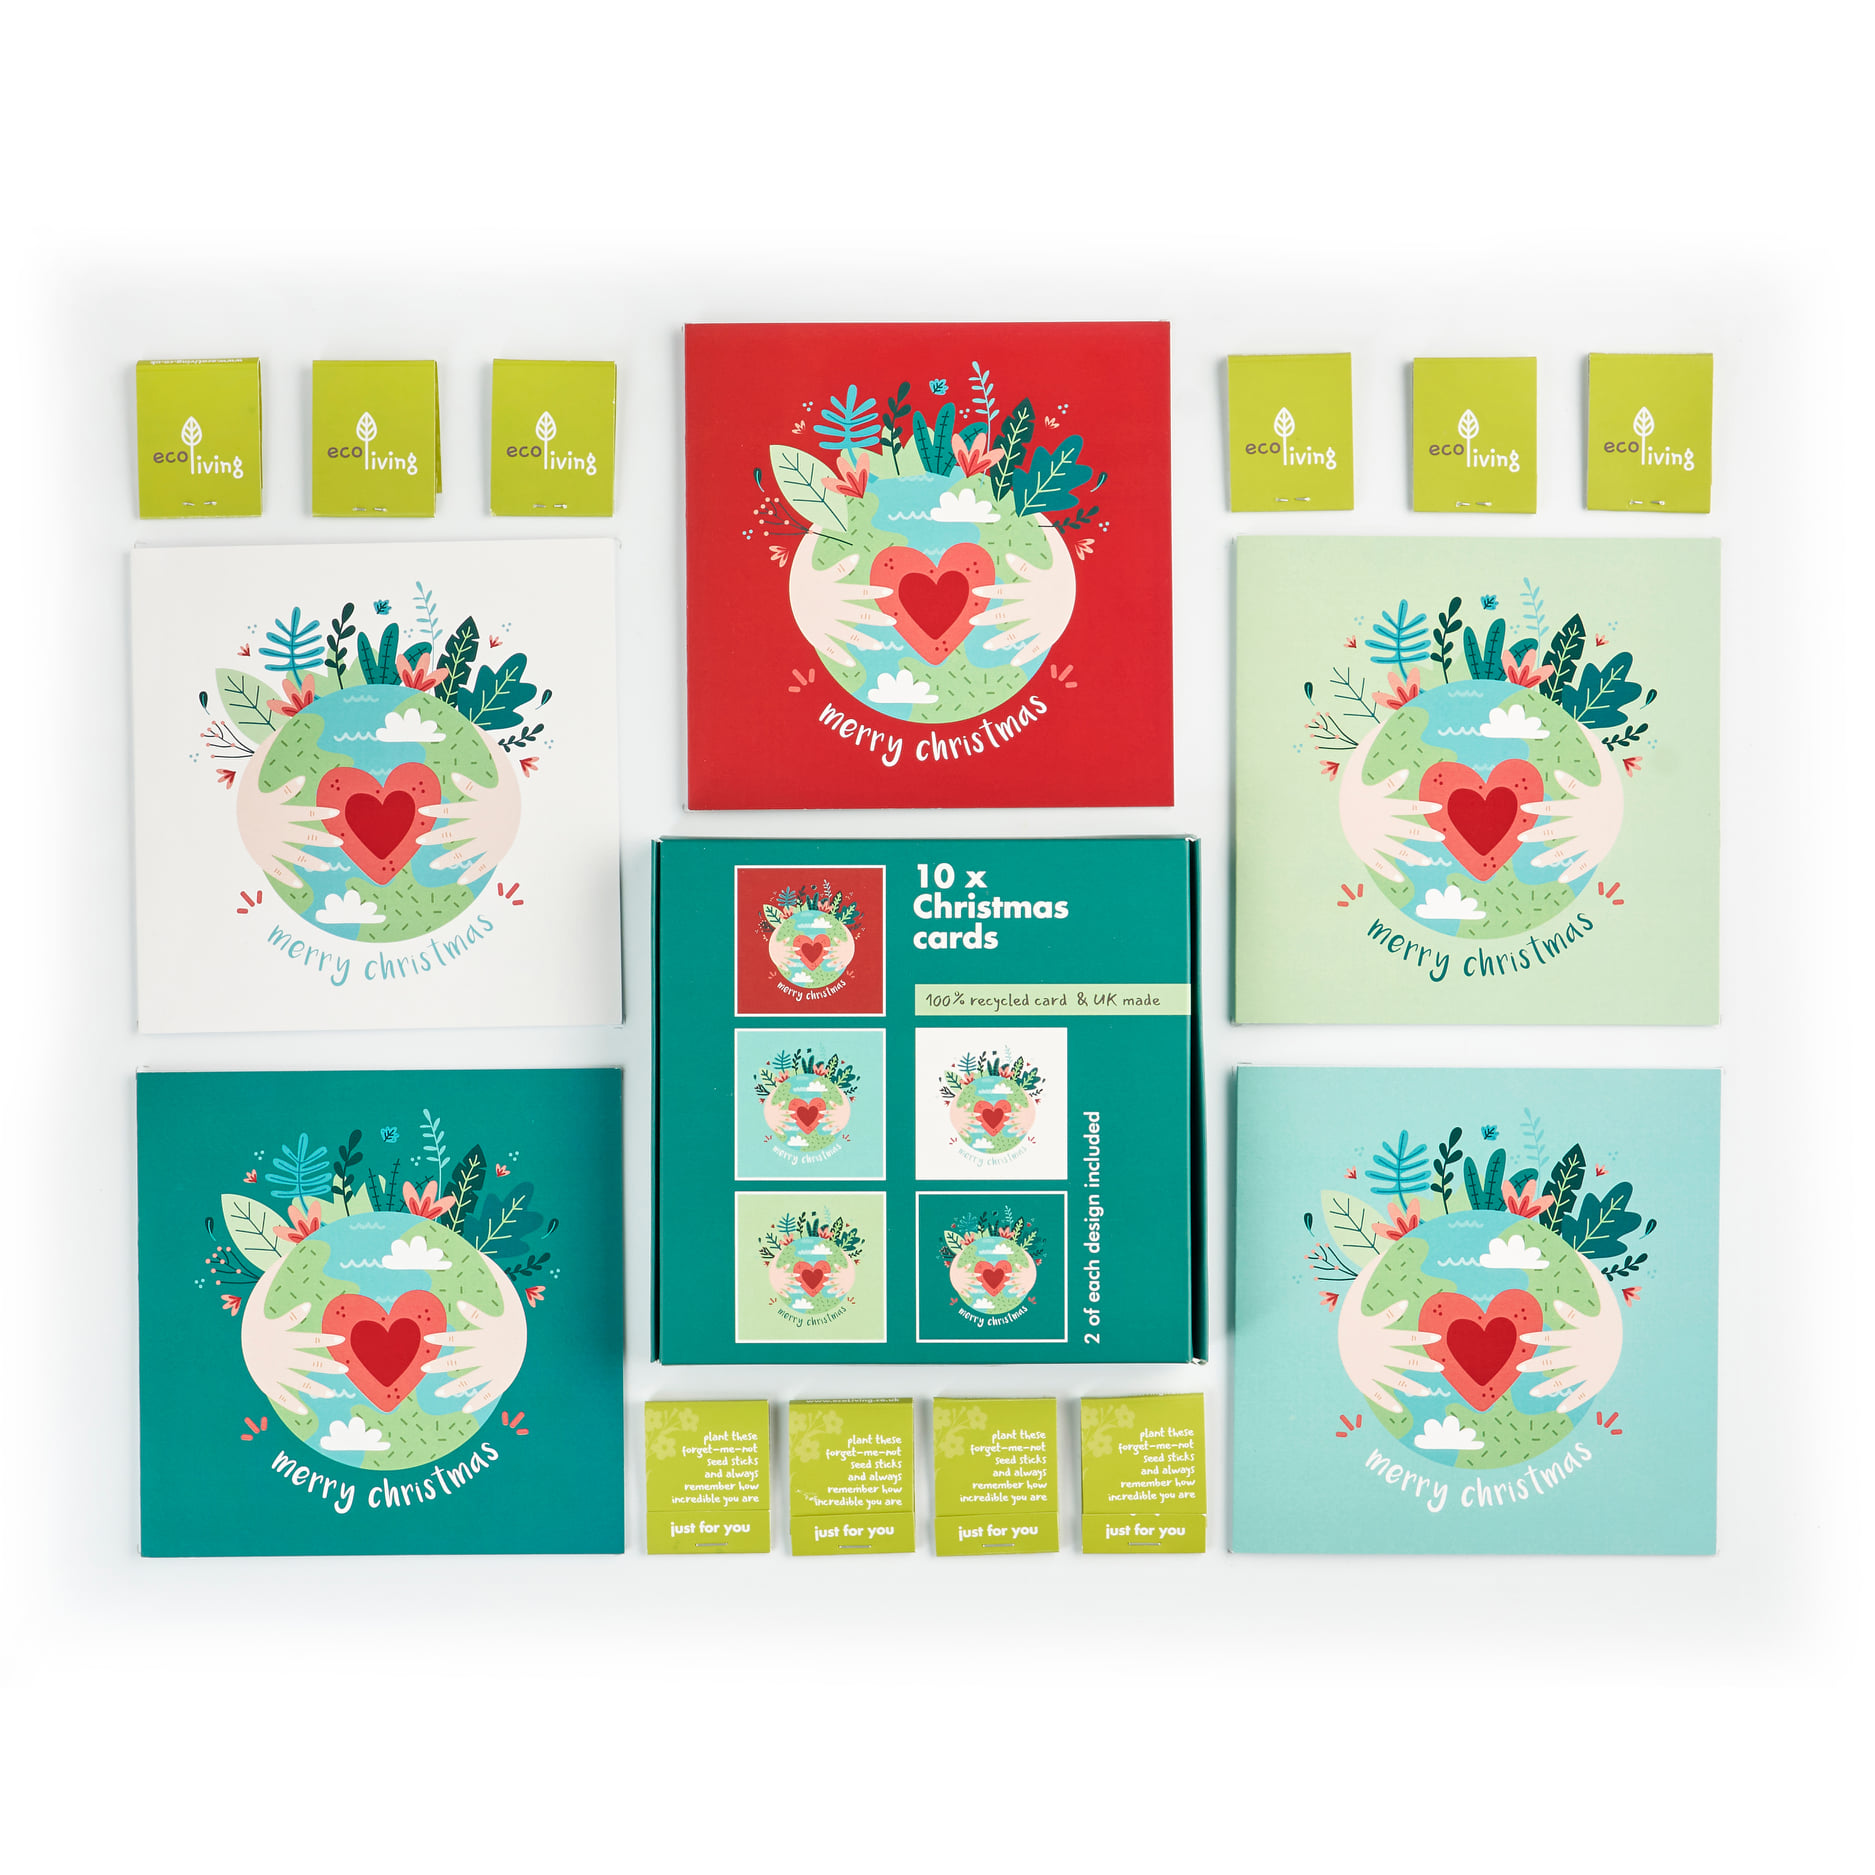 Recycled Christmas Cards, Pack of 10  - 10 Trees Planted (FSC 100%)